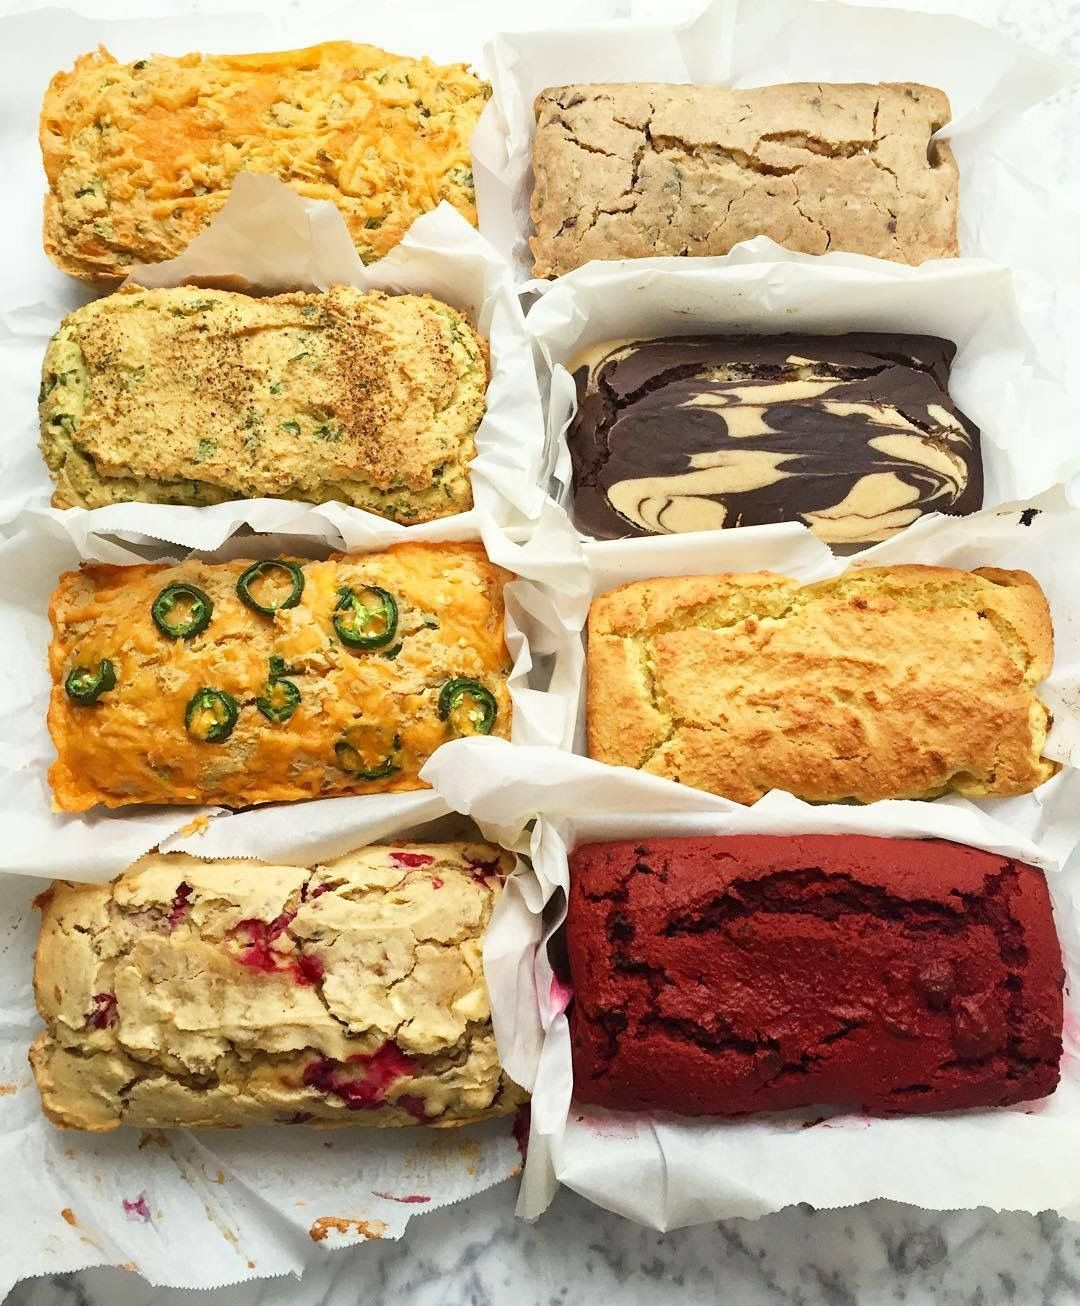 Oct 15 Easy Gluten Free/Vegan Quick Bread Base with Endless Flavor Possibilities. (Fill in your own flavor!) images